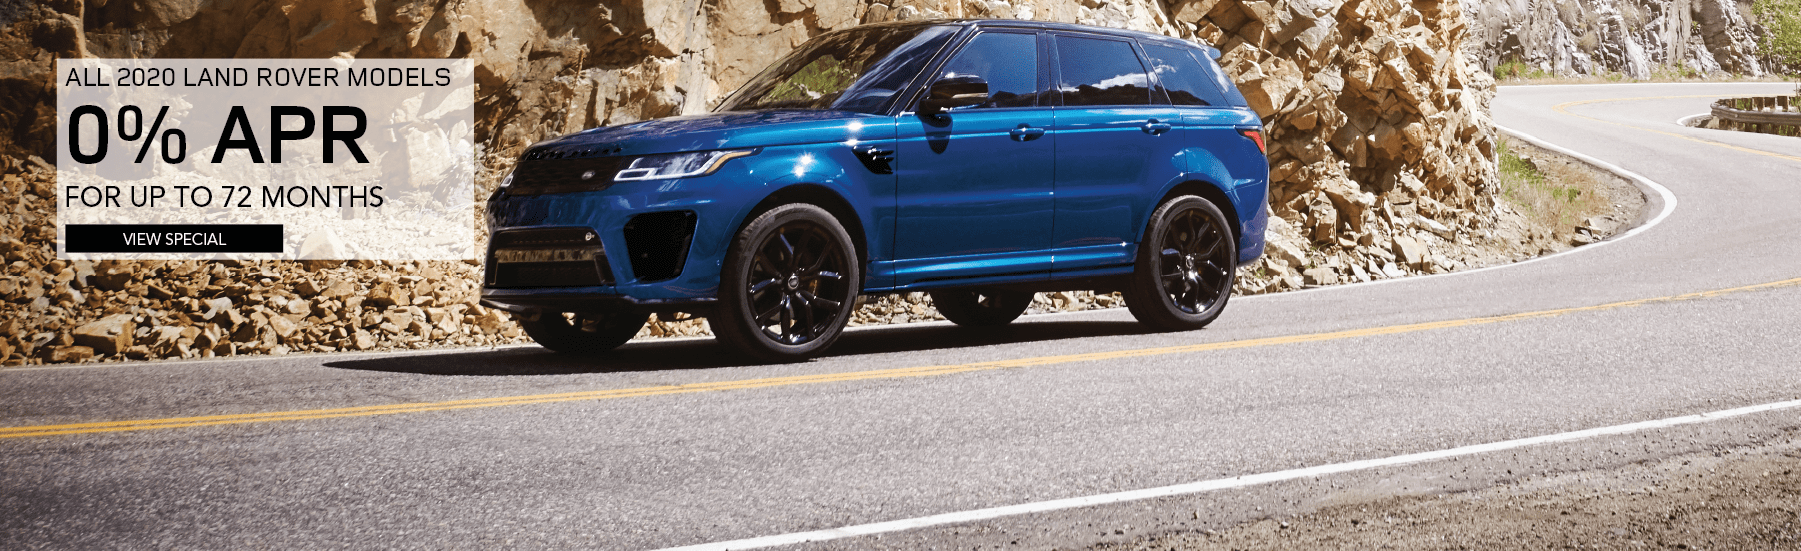 2020 LAND ROVER MODELS. 0 PERCENT APR FOR 72 MONTHS. BLUE RANGE ROVER SPORT DRIVING DOWN ROAD NEAR ROCKY TERRAIN.. VIEW SPECIAL.